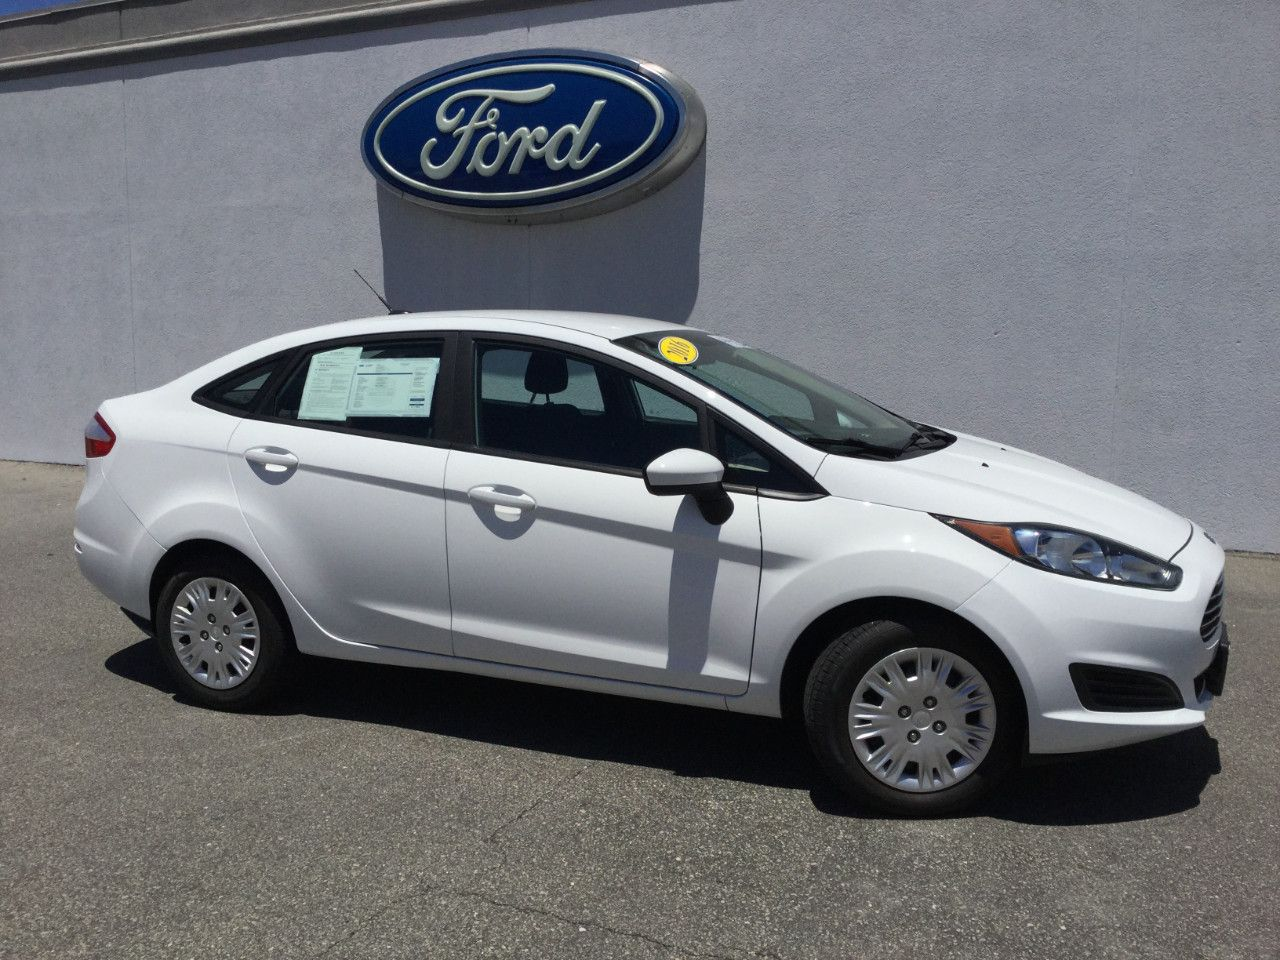 389 New Ford Cars, SUVs in Fayetteville Ford, Used ford, Car